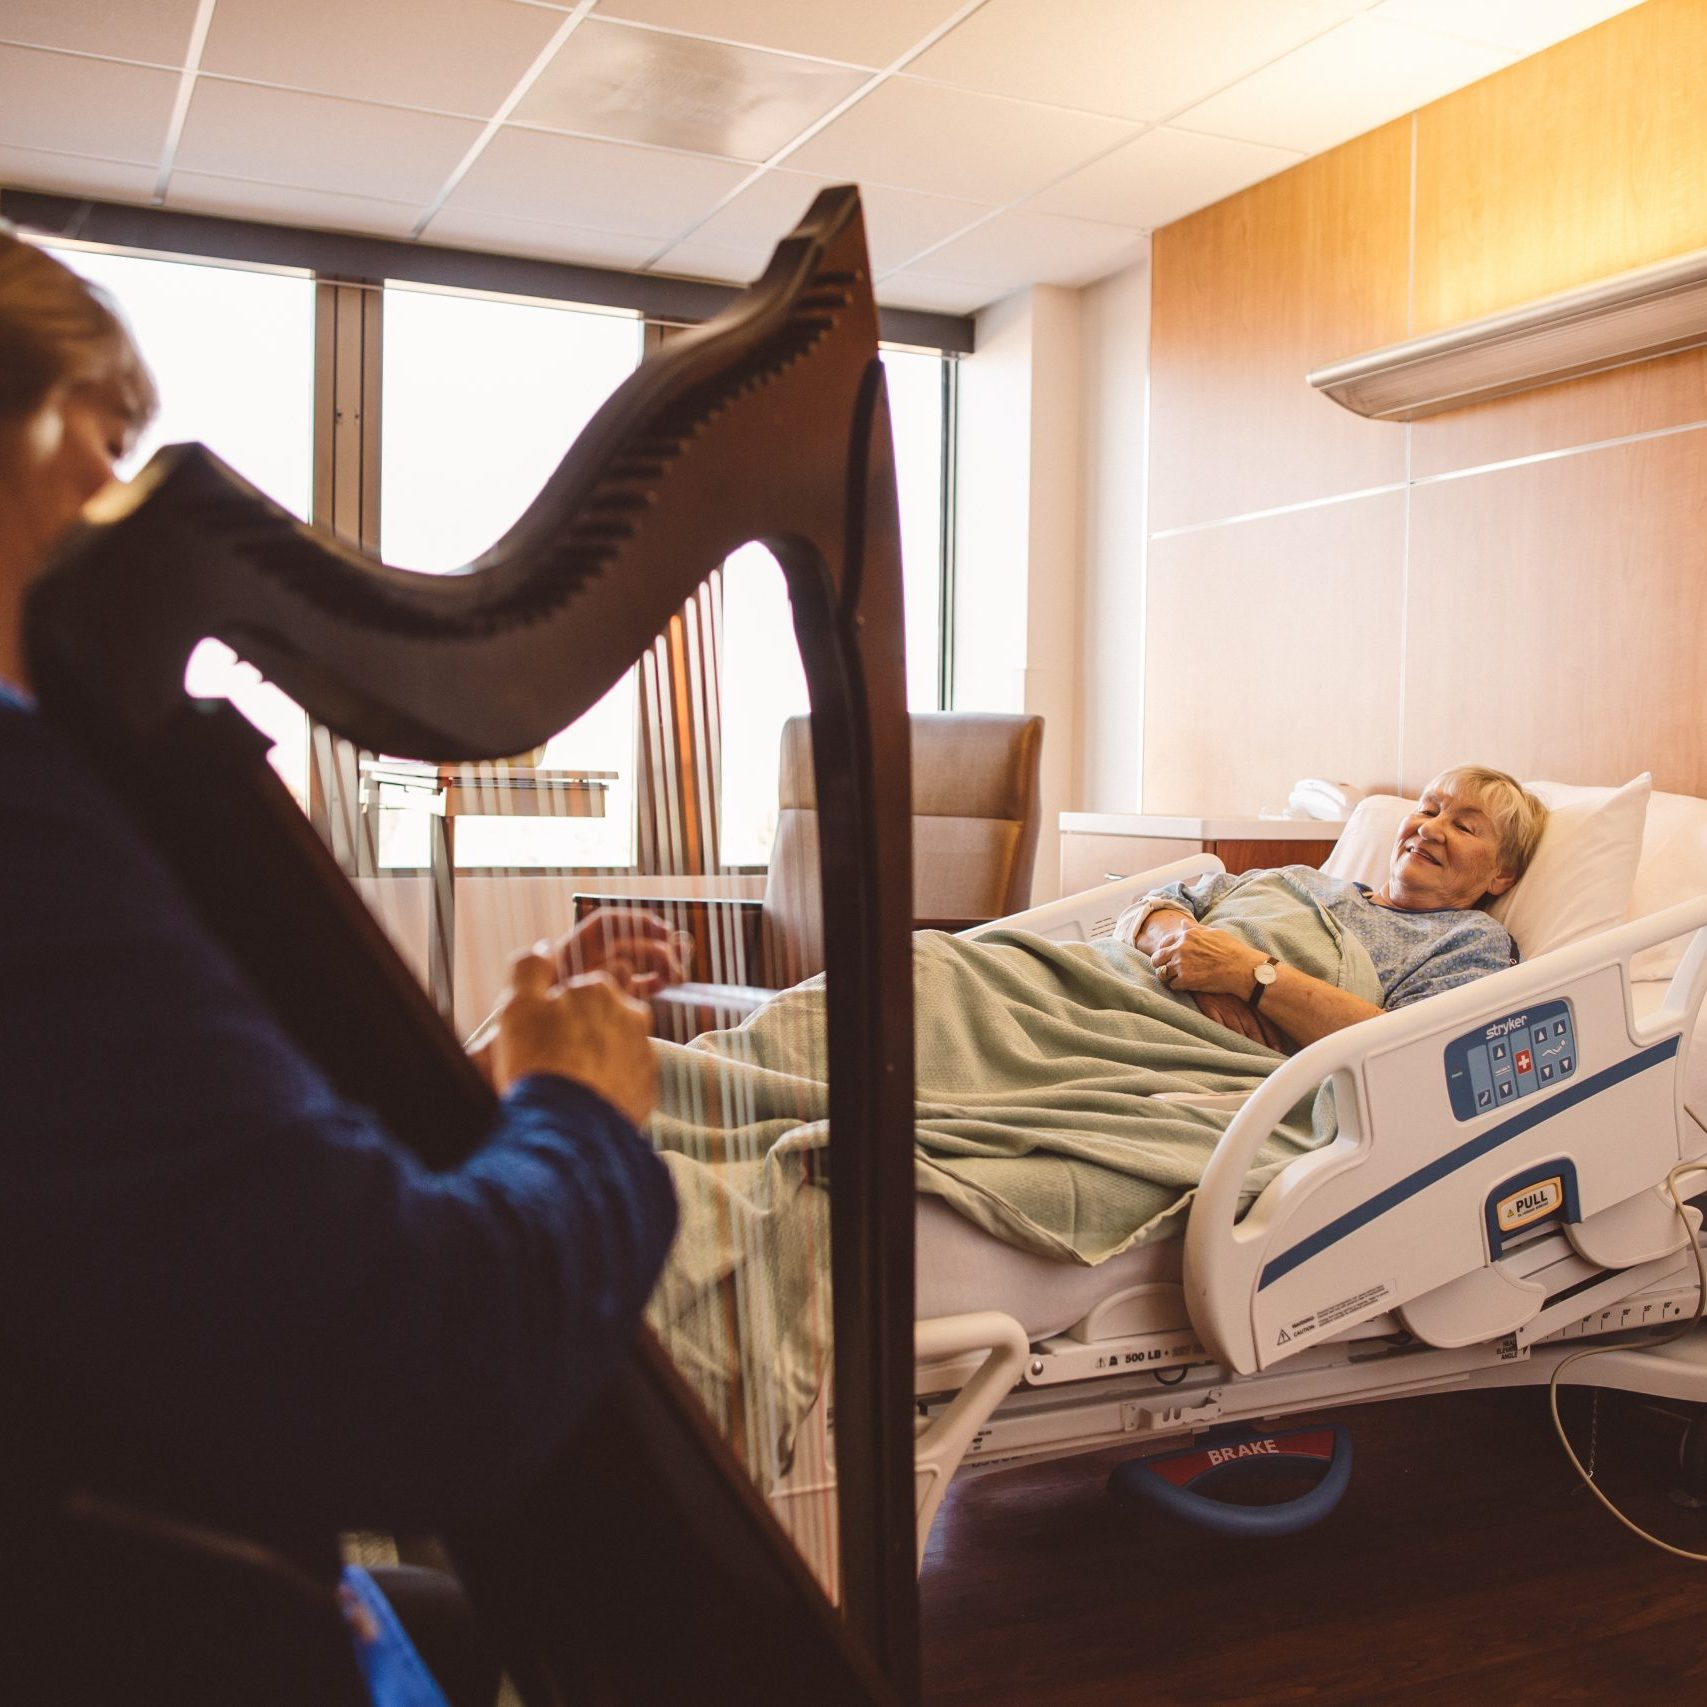 Denver Harpist Barbara Playing Therapeutic Music for Patient